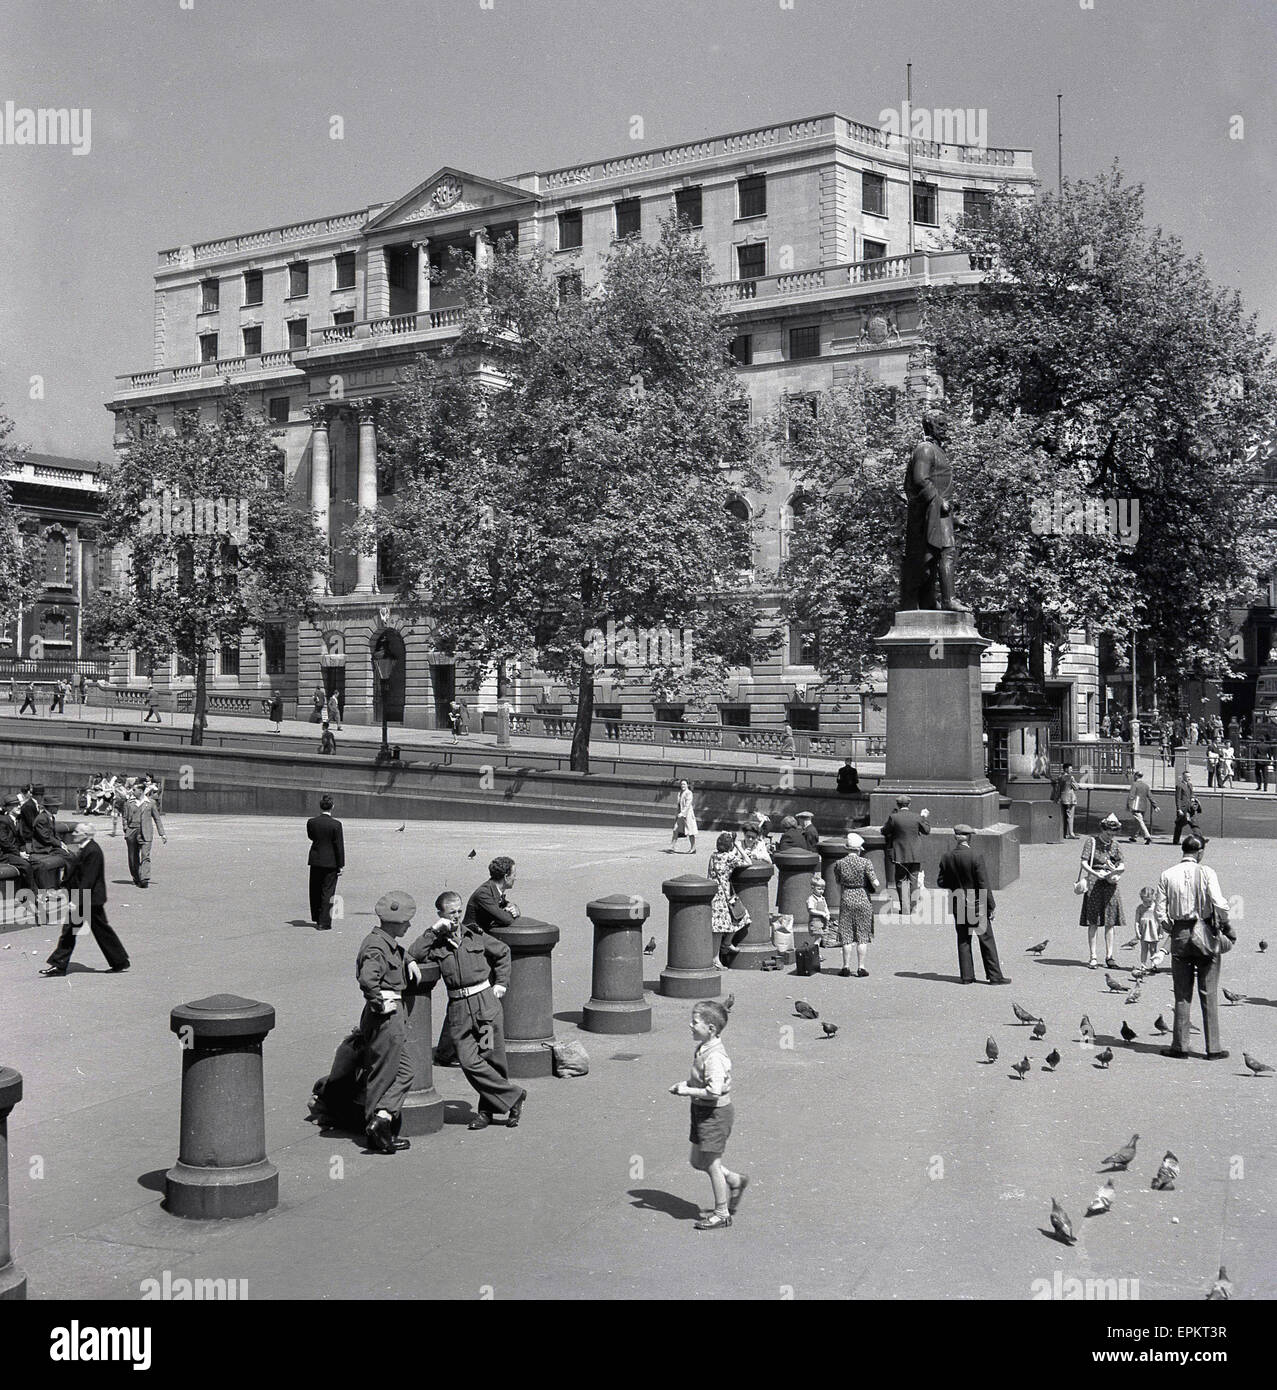 historical, 1949, picture shows a quiet trafalgar square as it was at this time, some soldiers and local people. - Stock Image